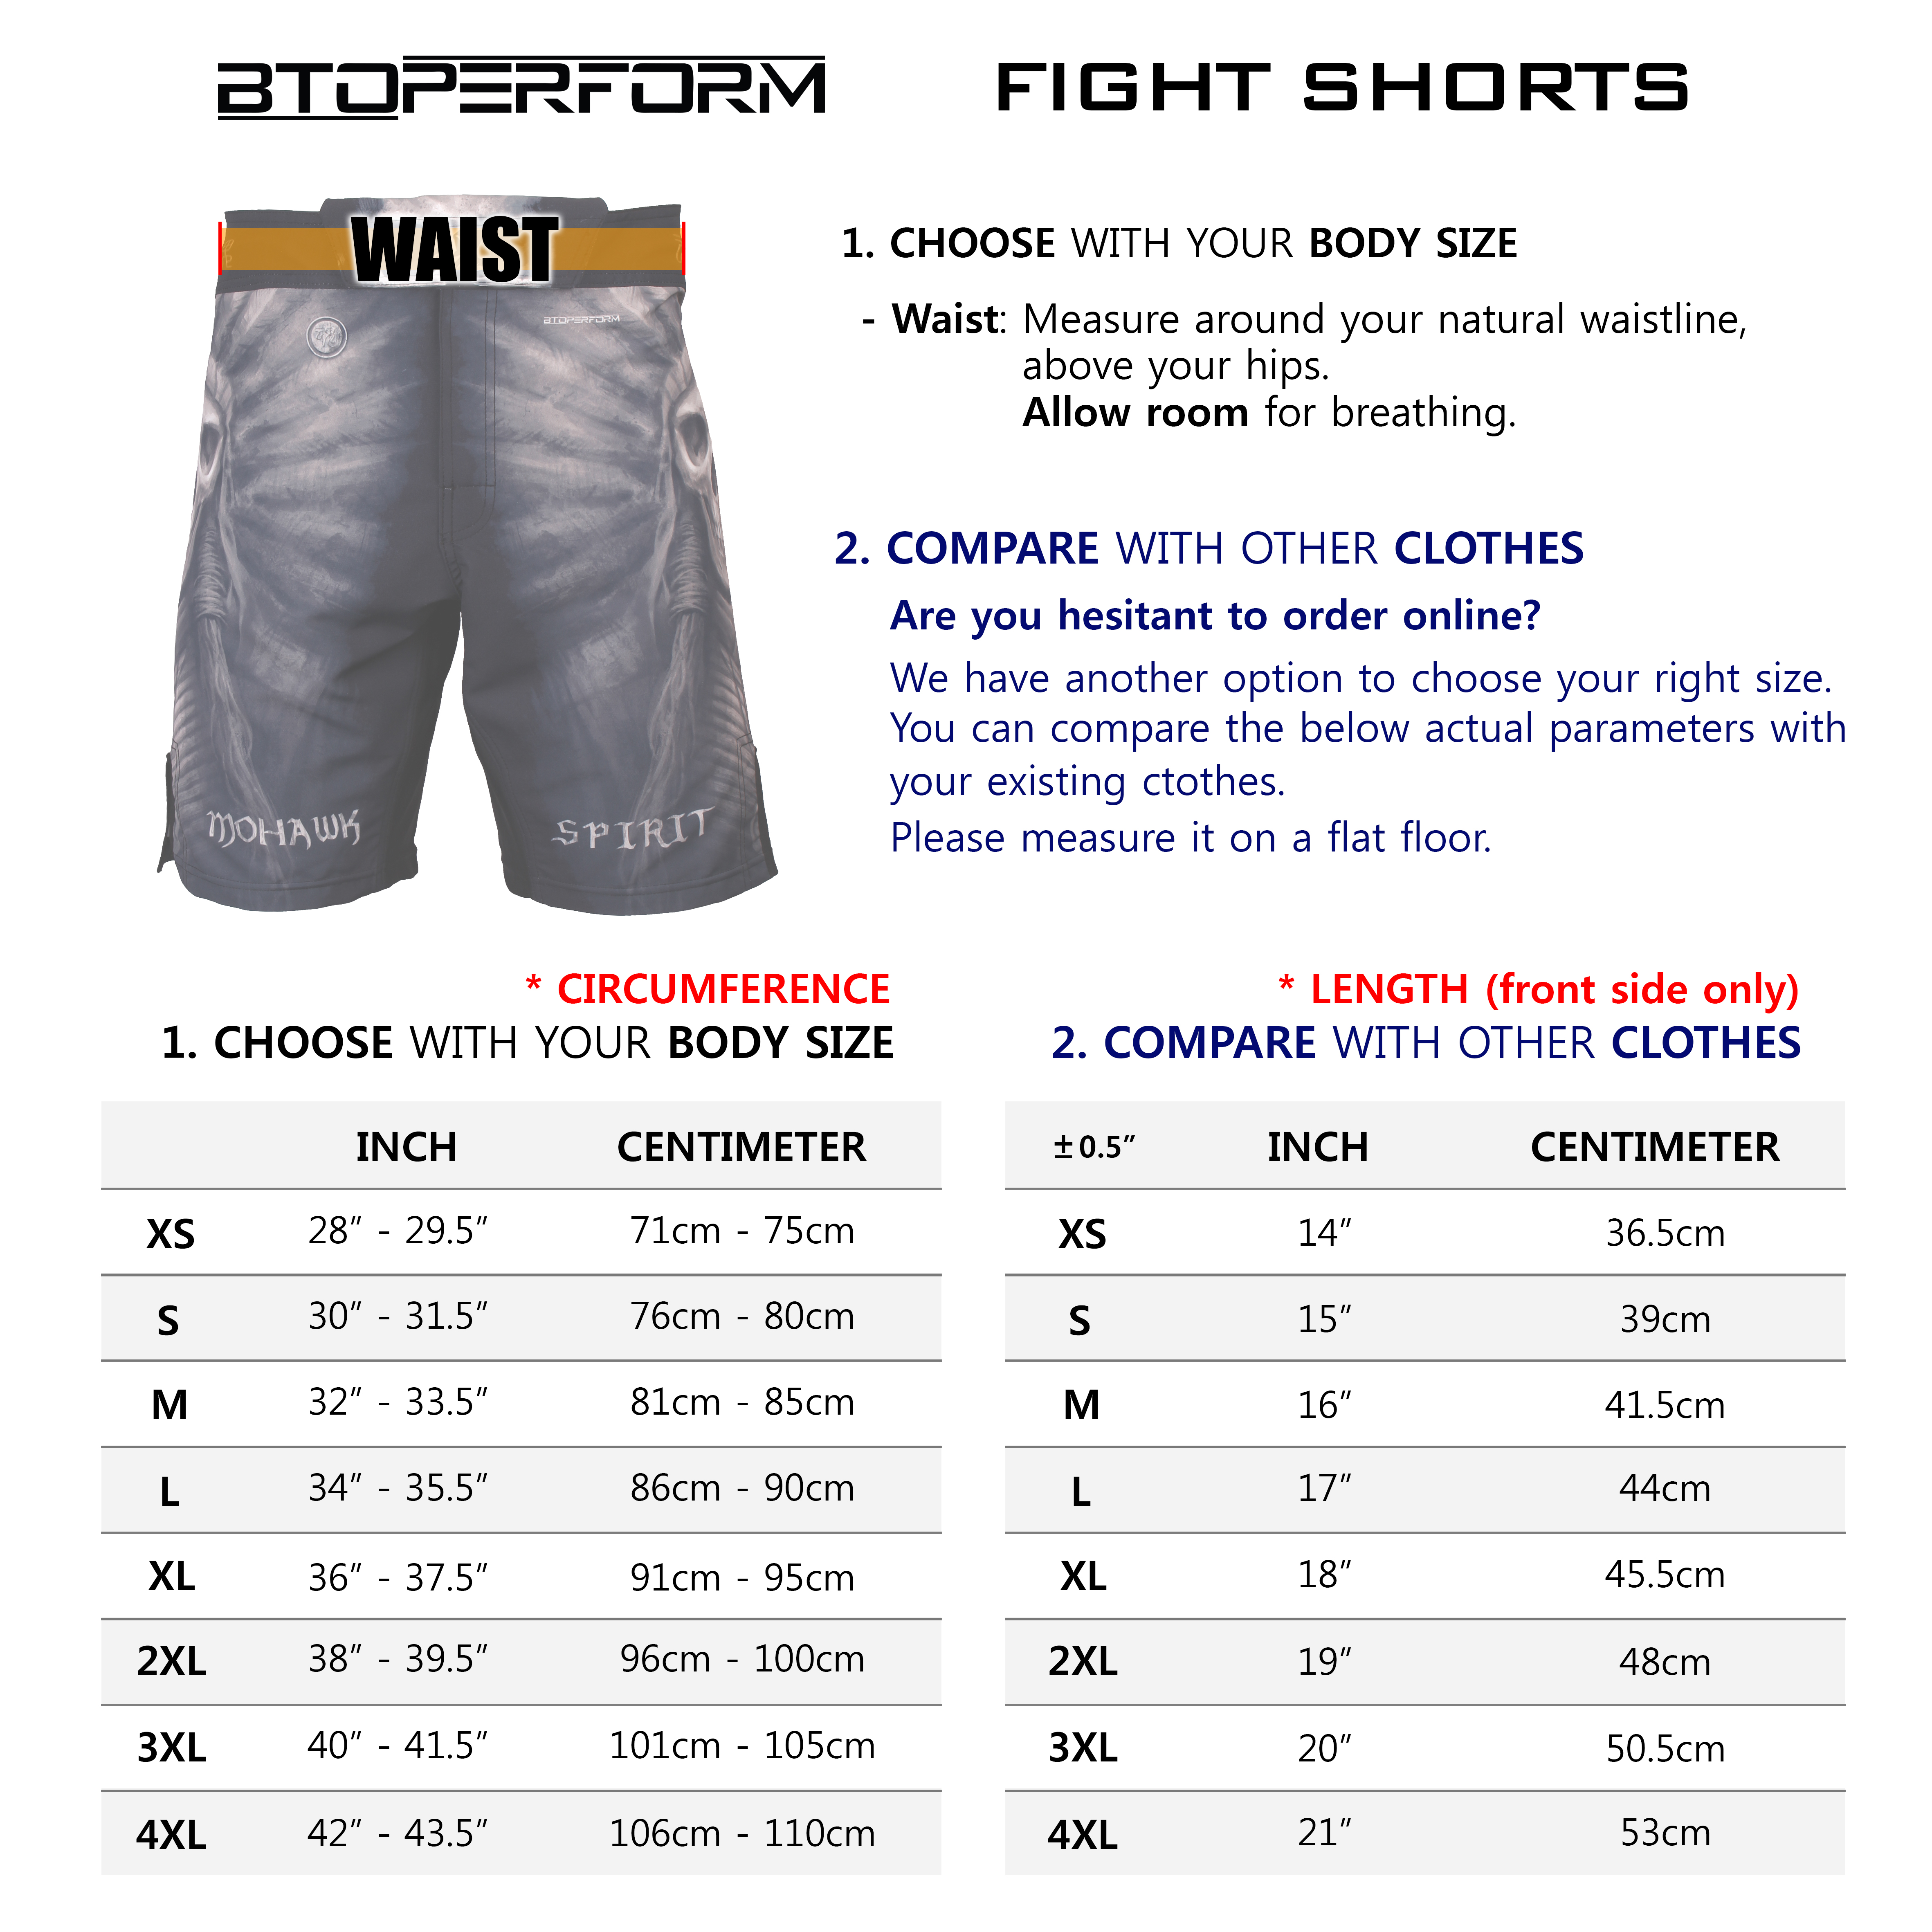 btoperform-size-chart-fight-short-mma-trunk-1.jpg